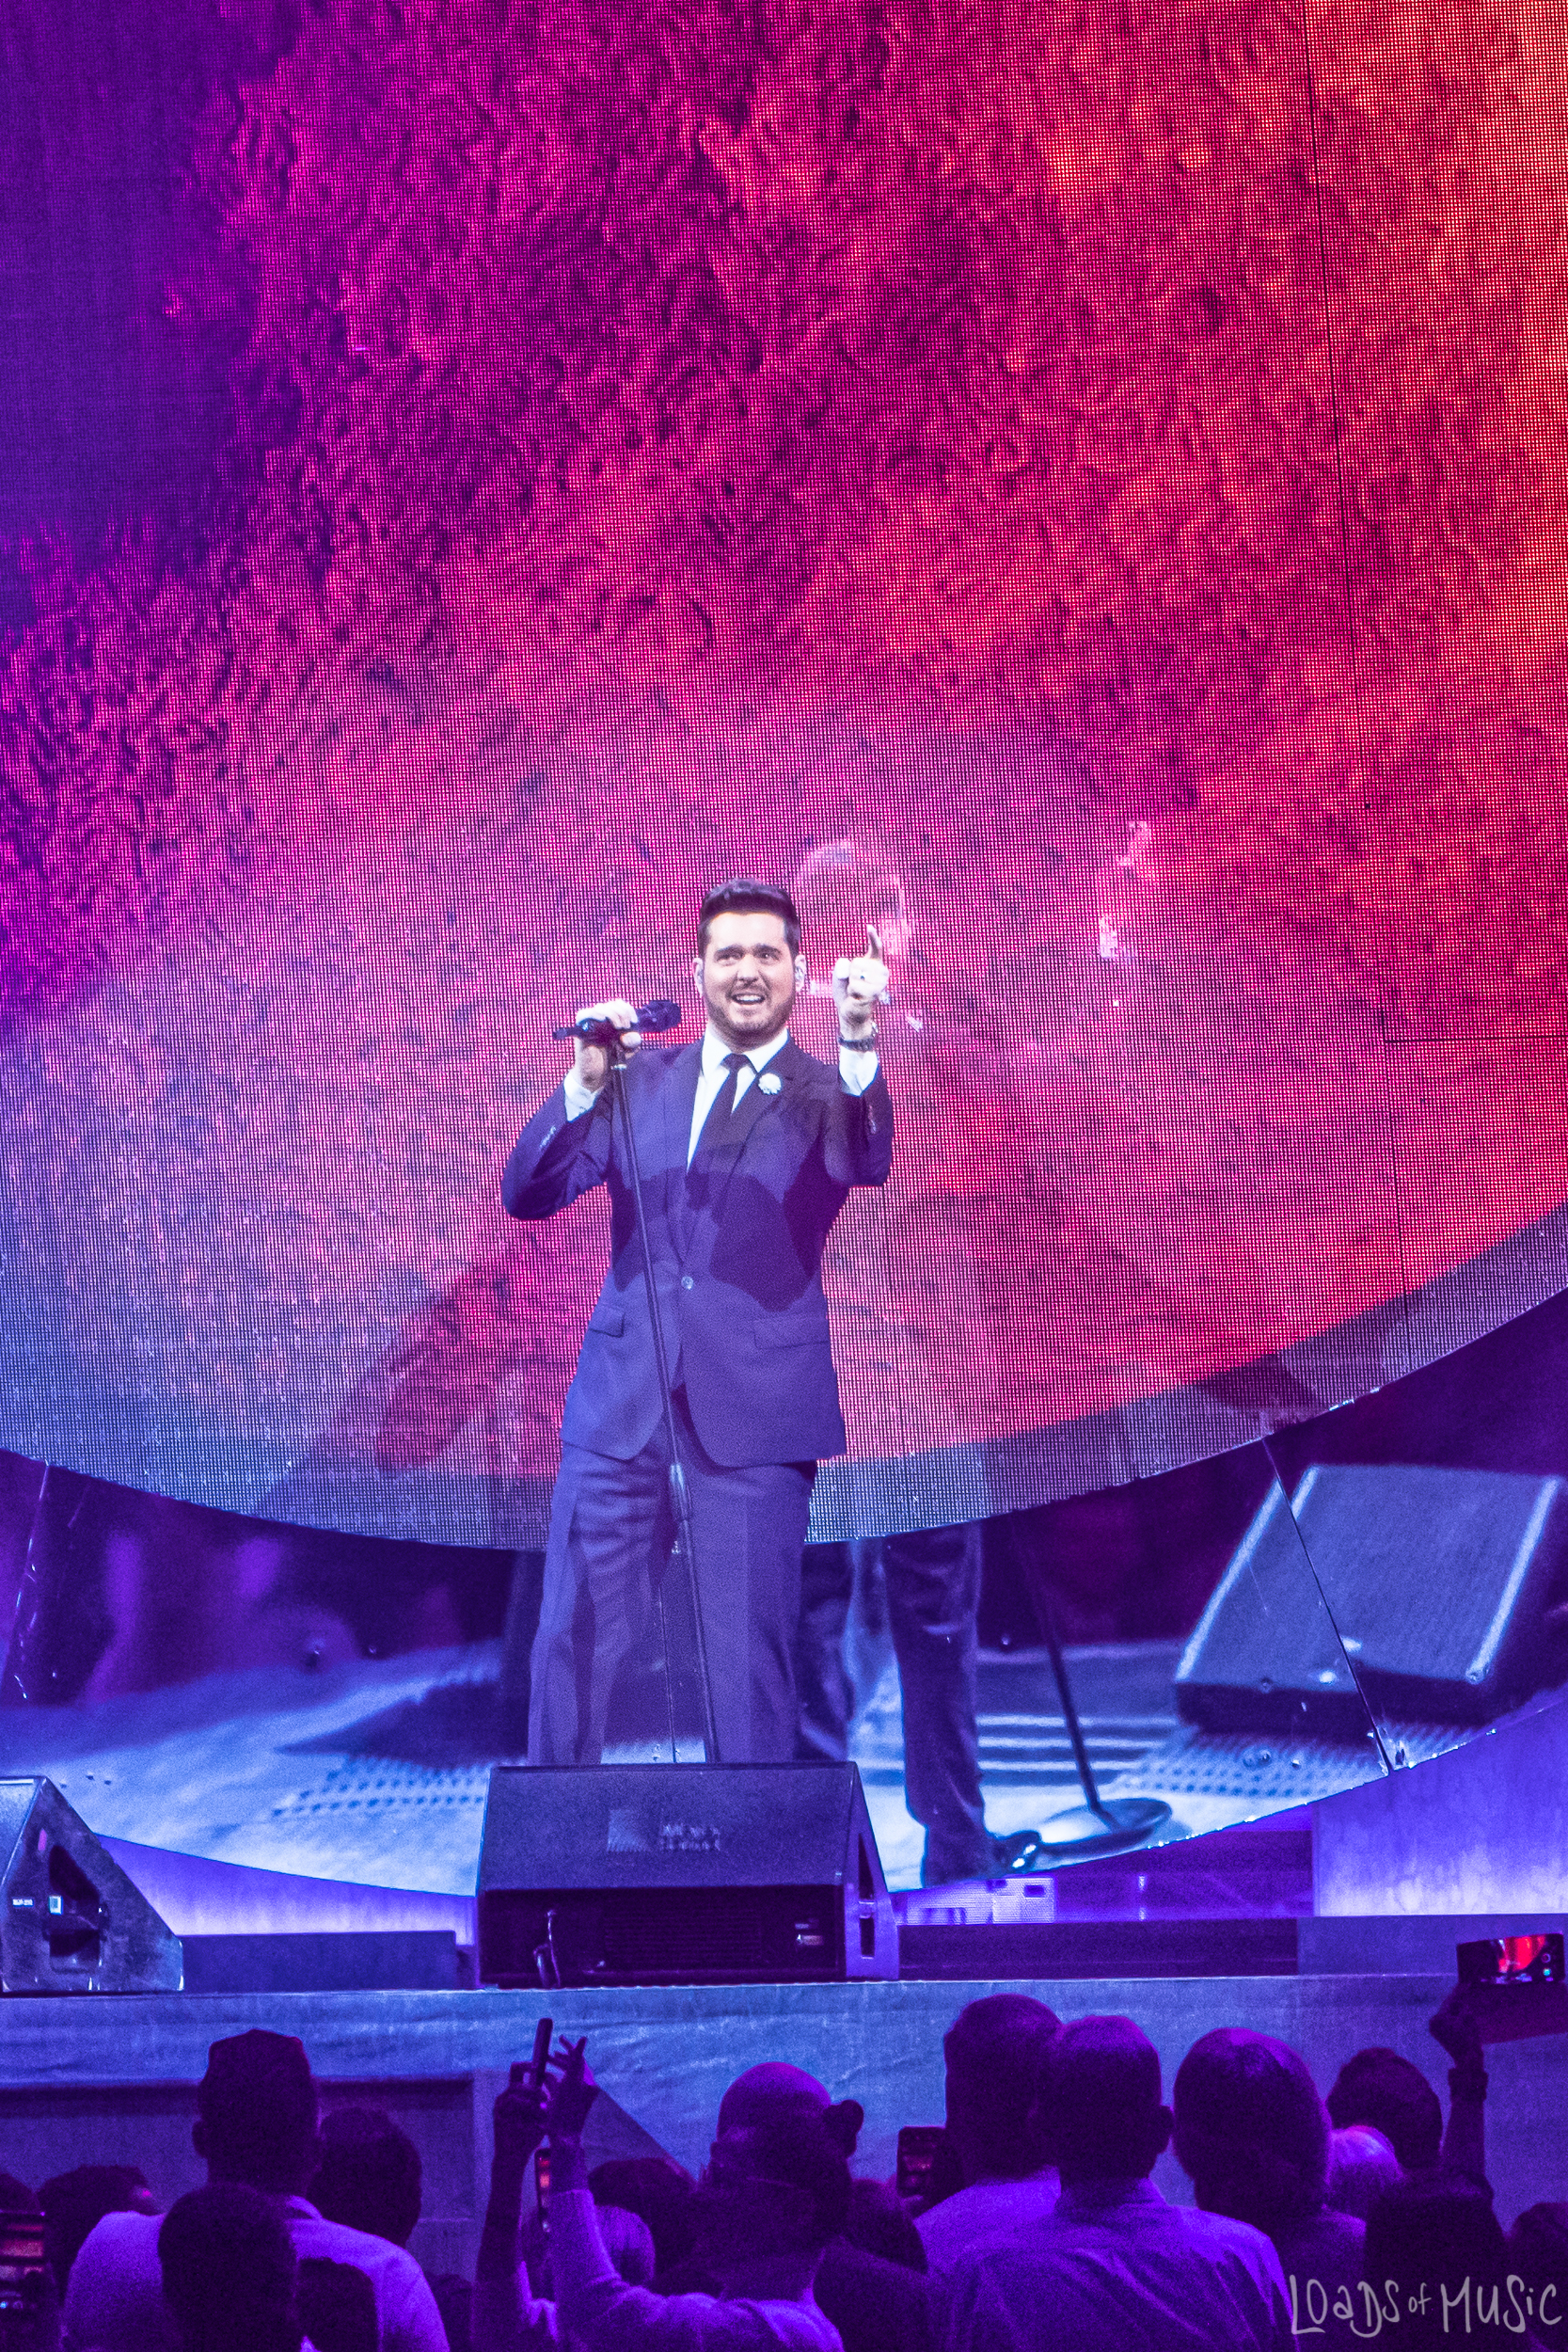 Michael_Buble_Hallenstadion_MB_7